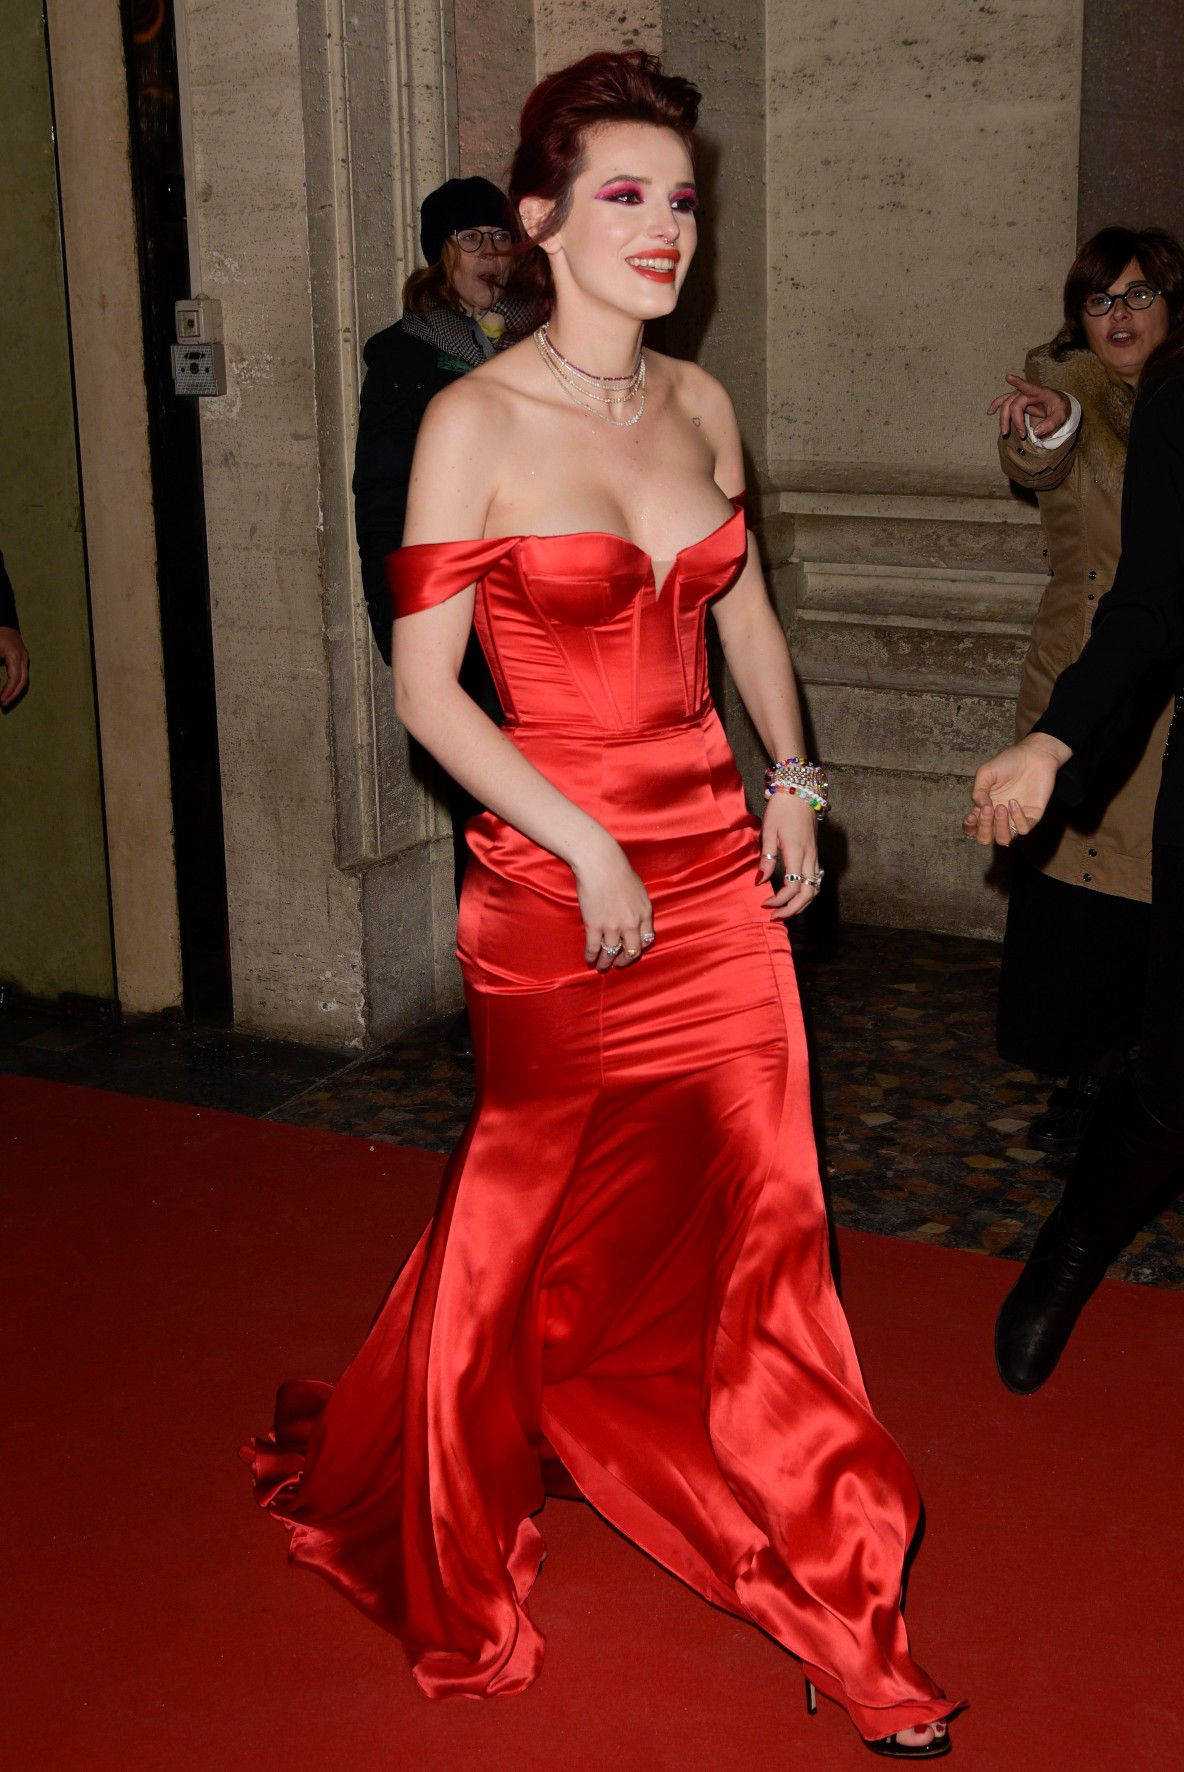 bella-thorne-deep-cleavage-at-midnight-run-premiere-in-rome-8315